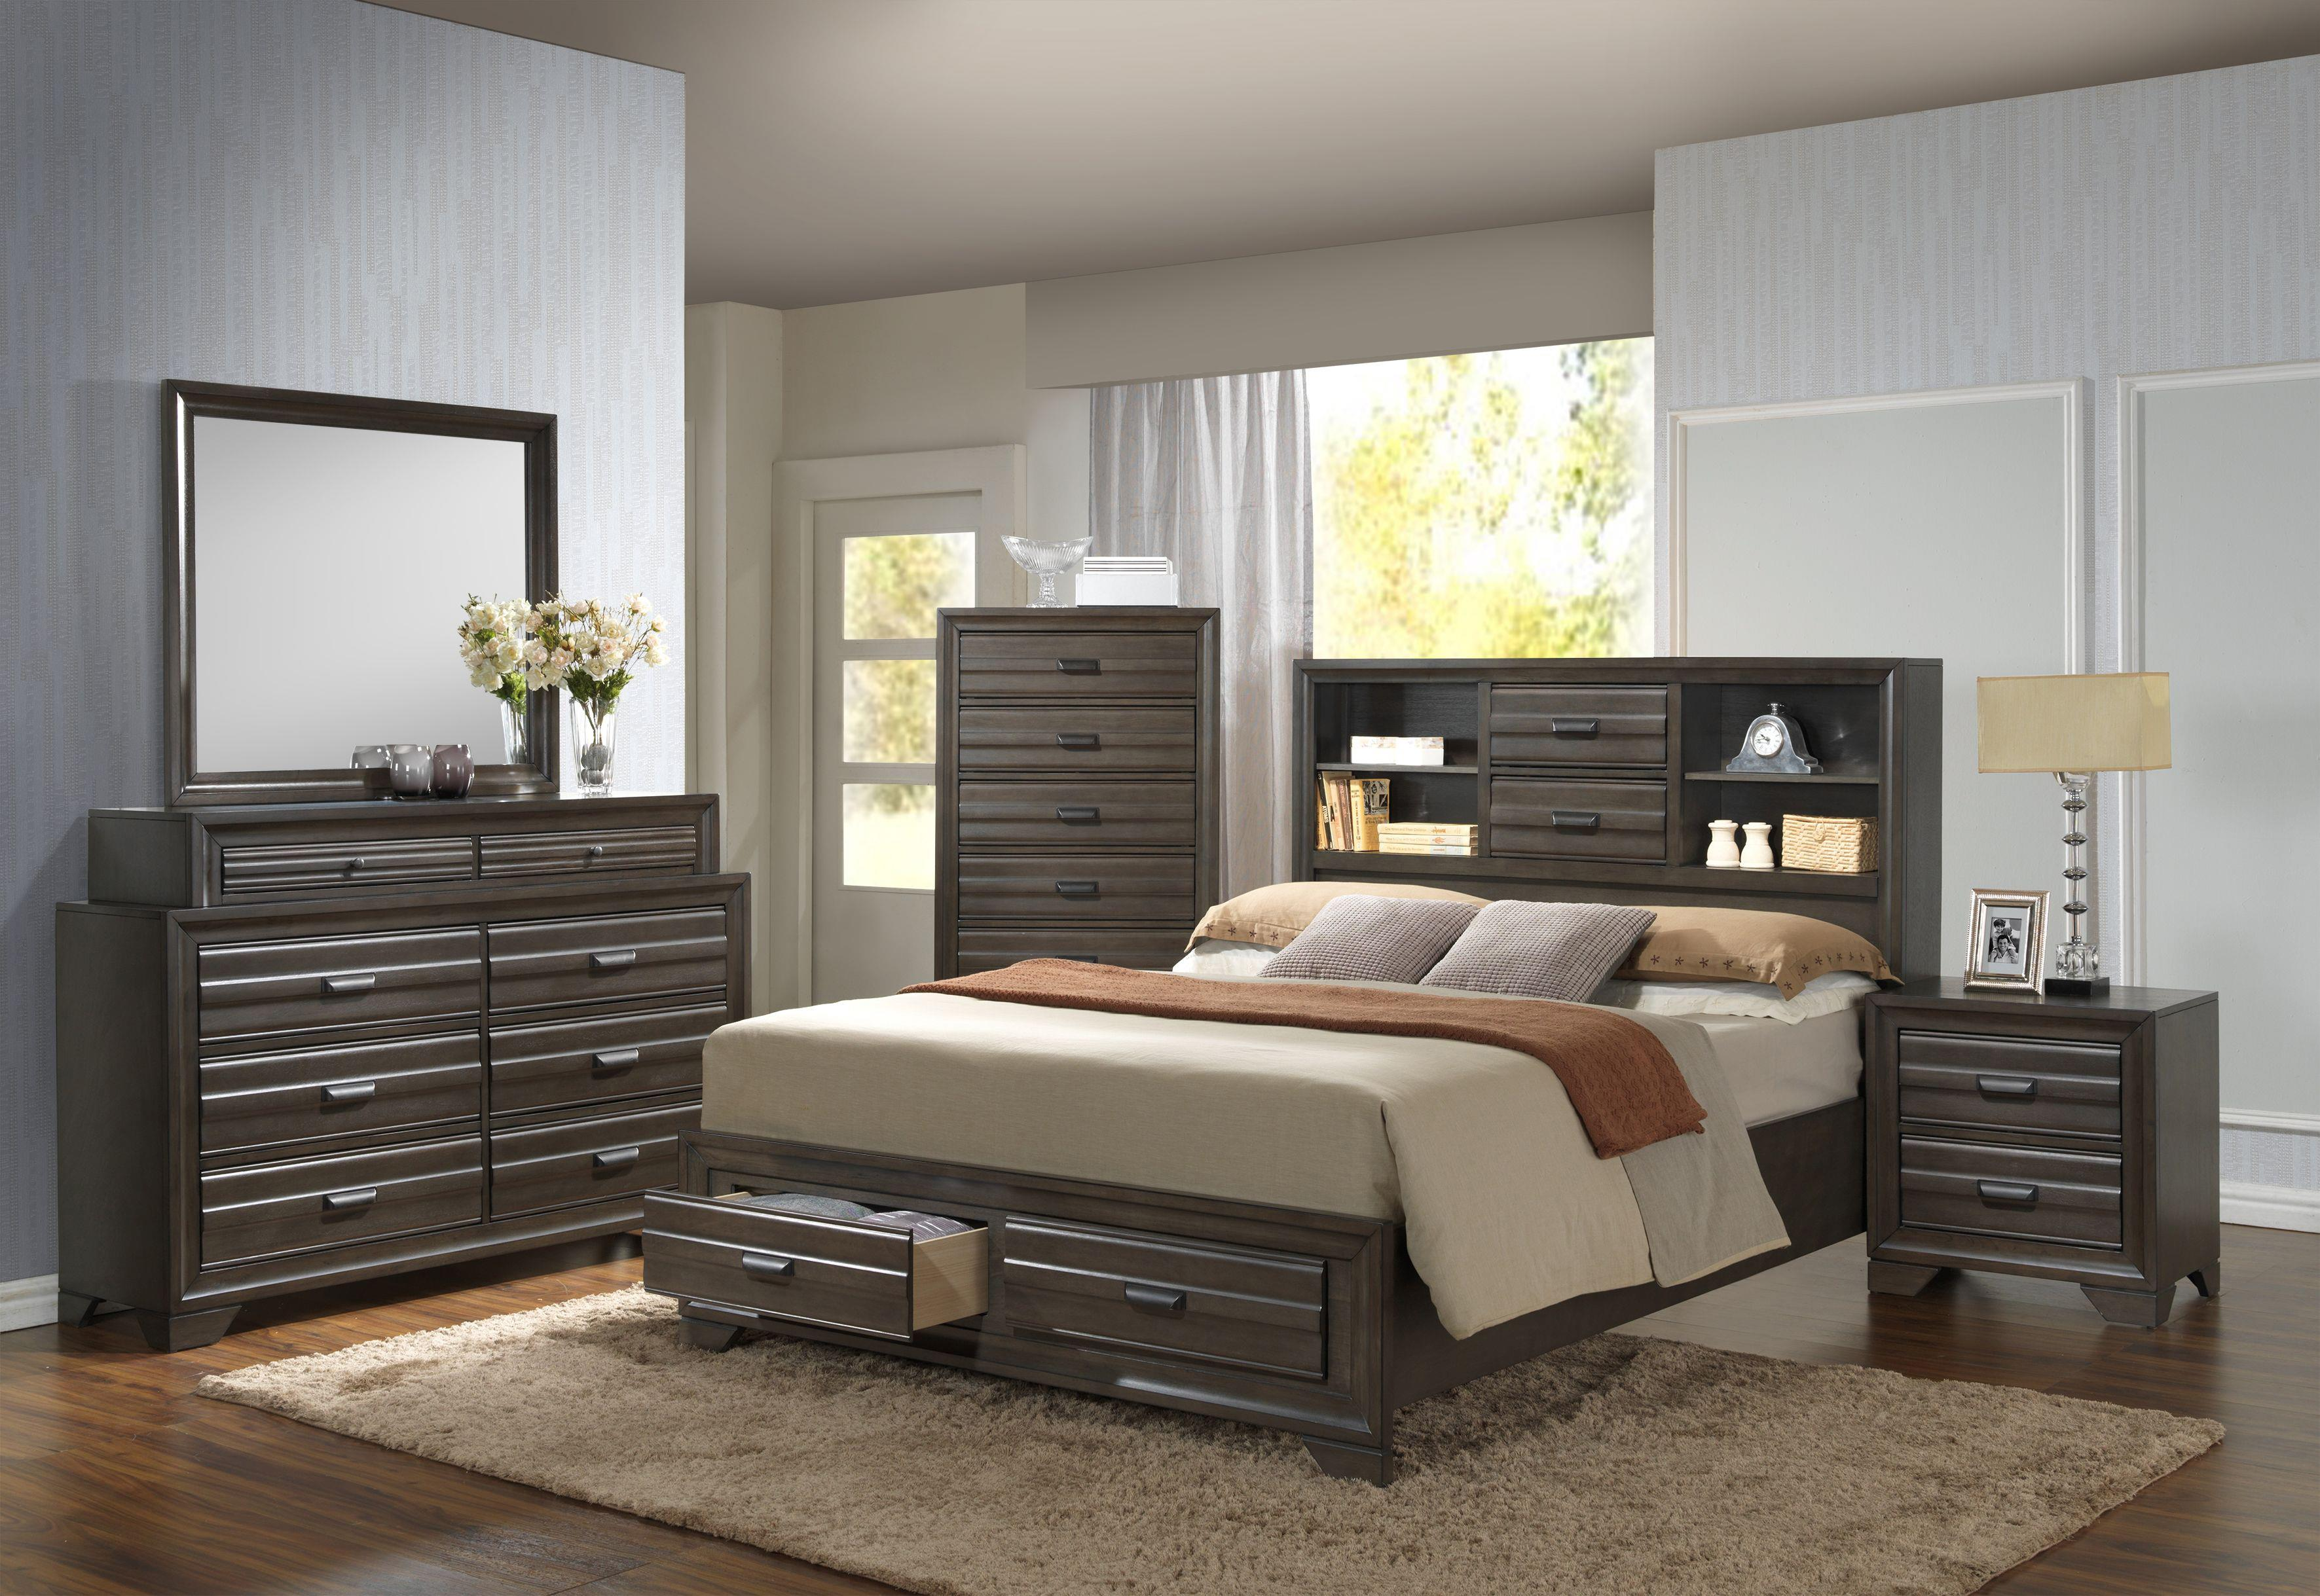 5236A Cal King Bedroom Group by Lifestyle at Beck's Furniture